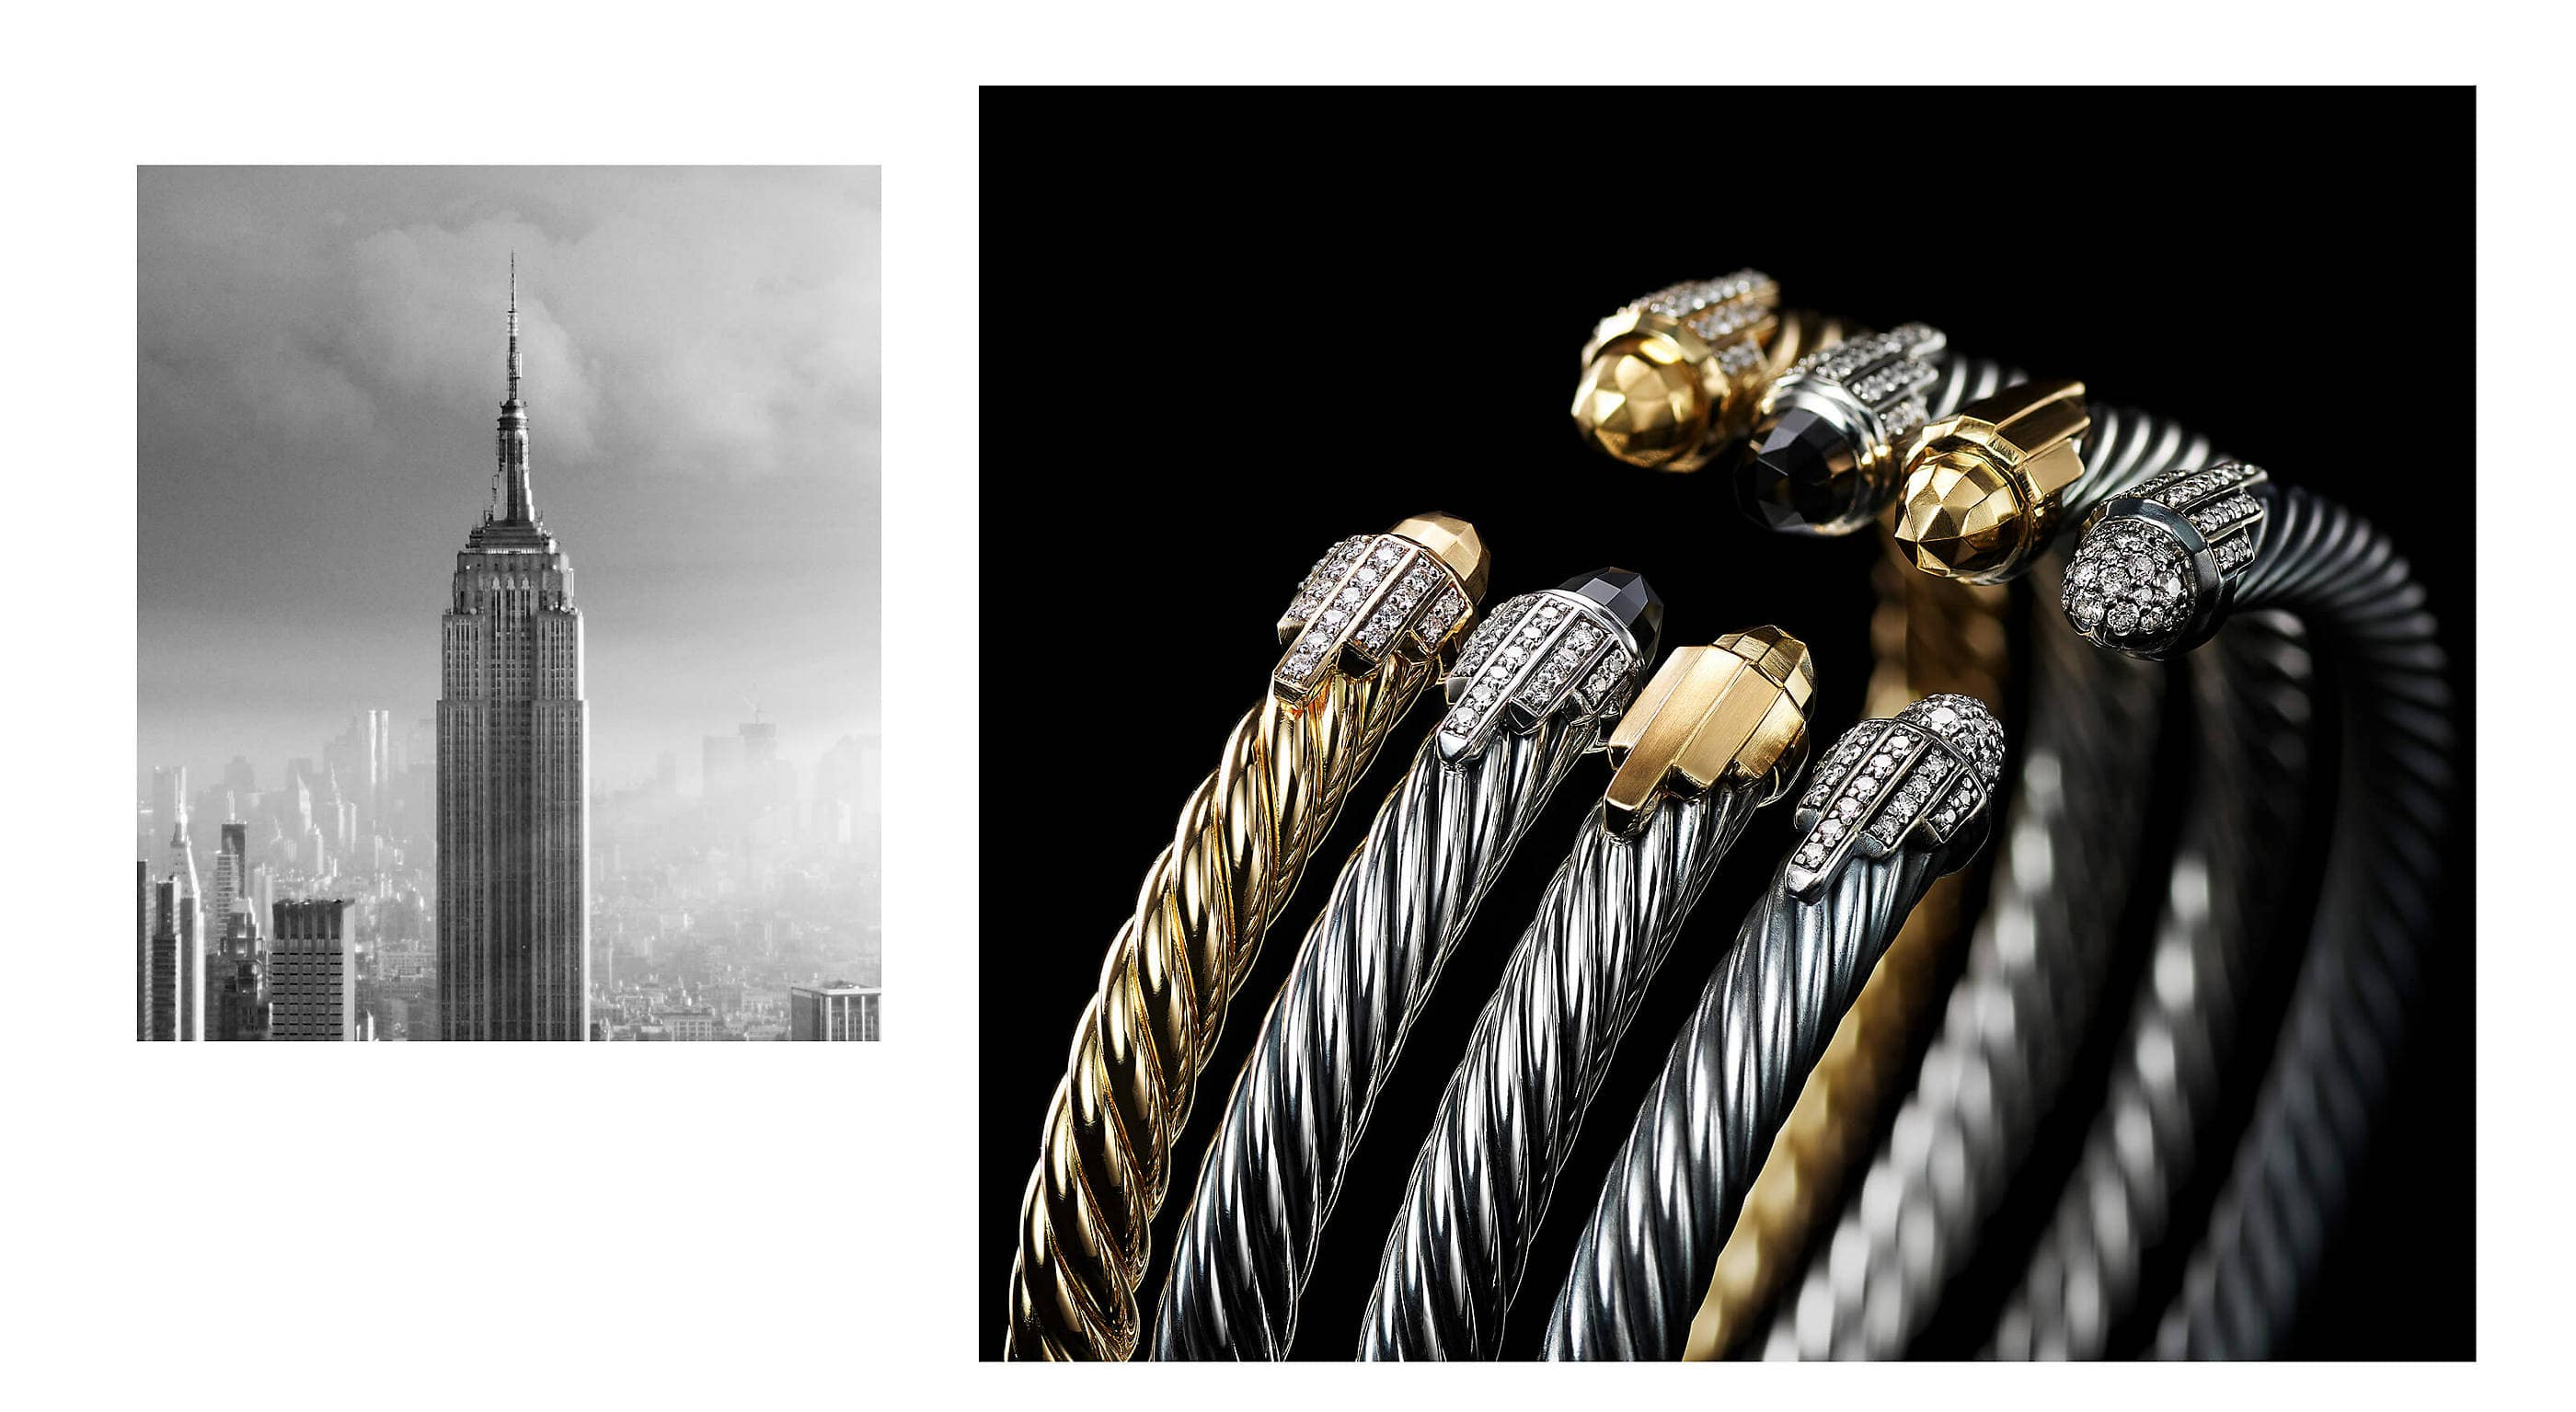 A close-up of four David Yurman Empire Collection Cable bracelets in a diagonal row standing on a black background. The jewelry is crafted from sterling silver or 18K yellow gold with or without black onyx, 18K yellow gold or pavé diamond end caps.